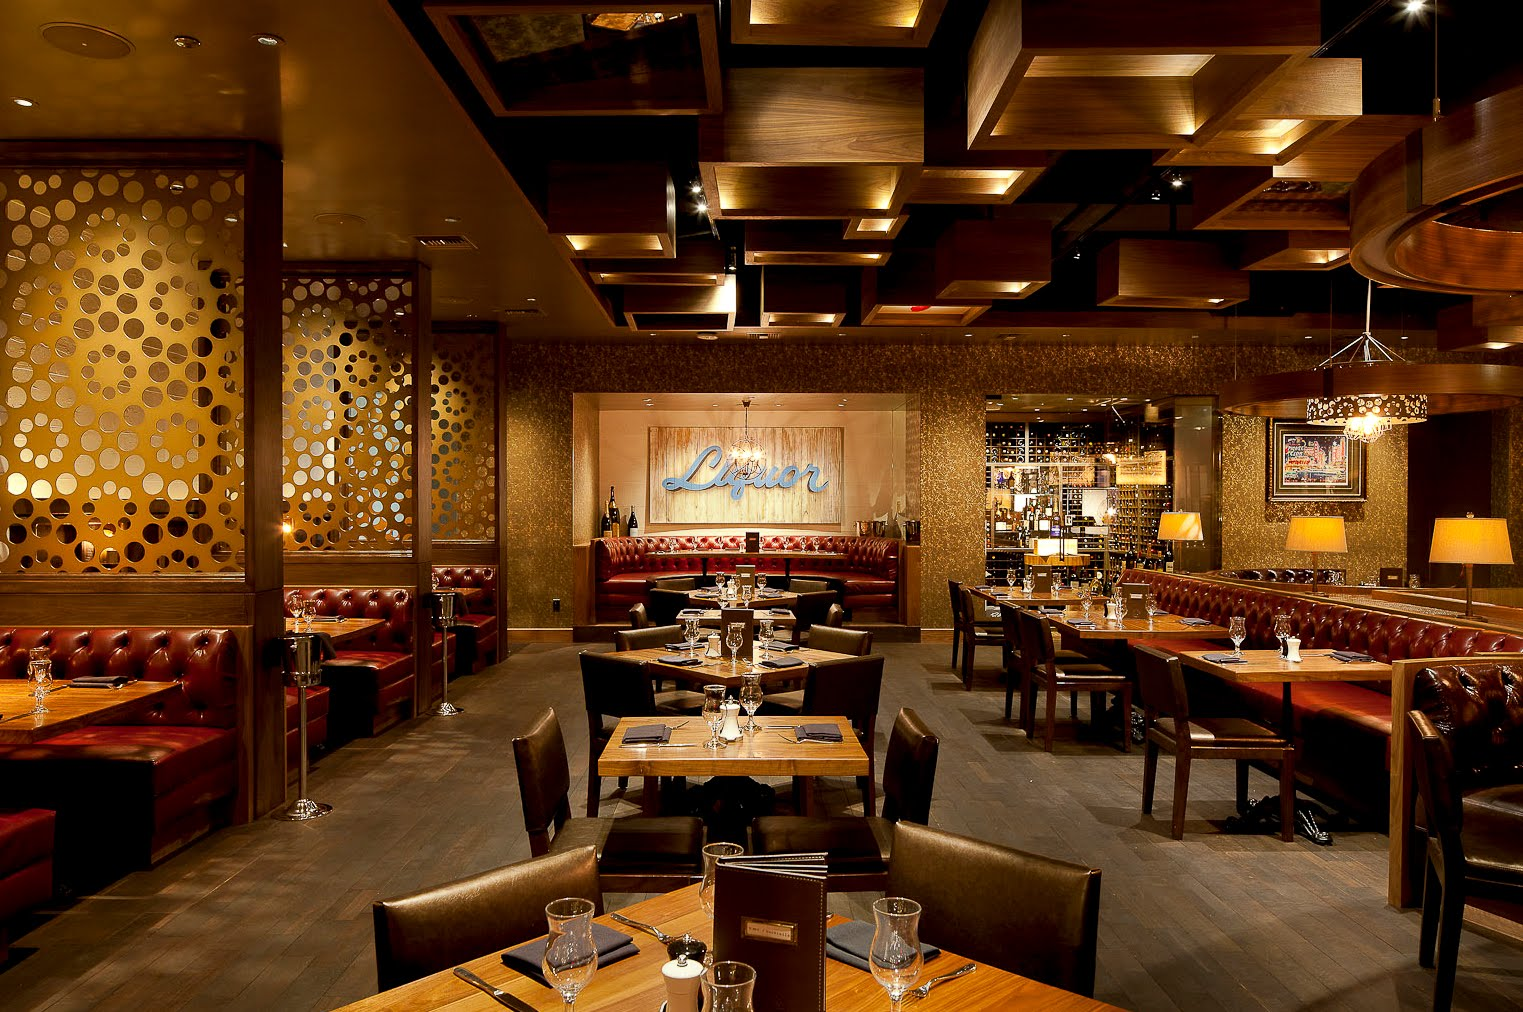 Jeff Green Photography Restaurant Interior Photography Of